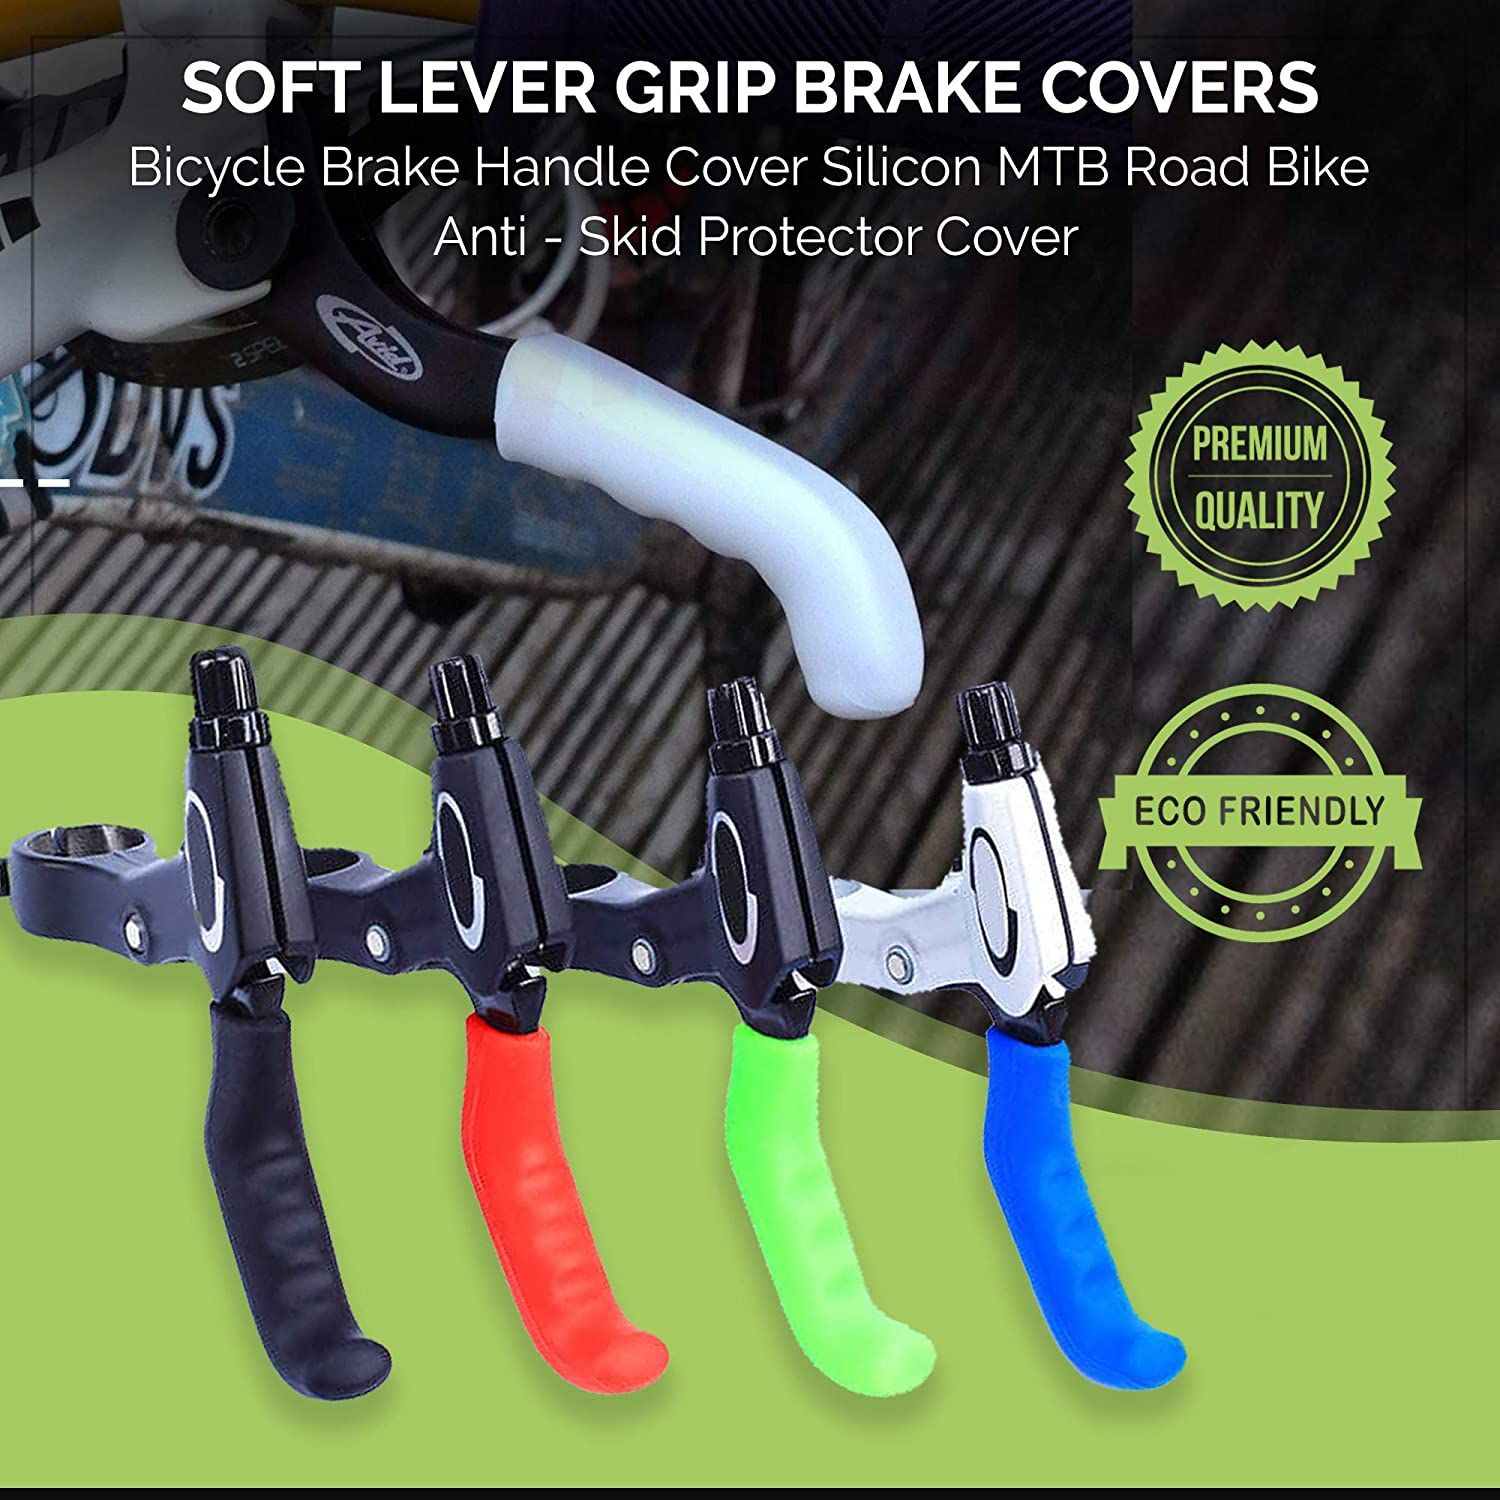 Anti-Slip Silicone Rubber Bike Brake Covers Botanique Brake Lever Grips 1 Pair Waterproof Sleeves for MTB BMX Cycle Road Mountain Bike Cycling Bicycle Multi Coloured